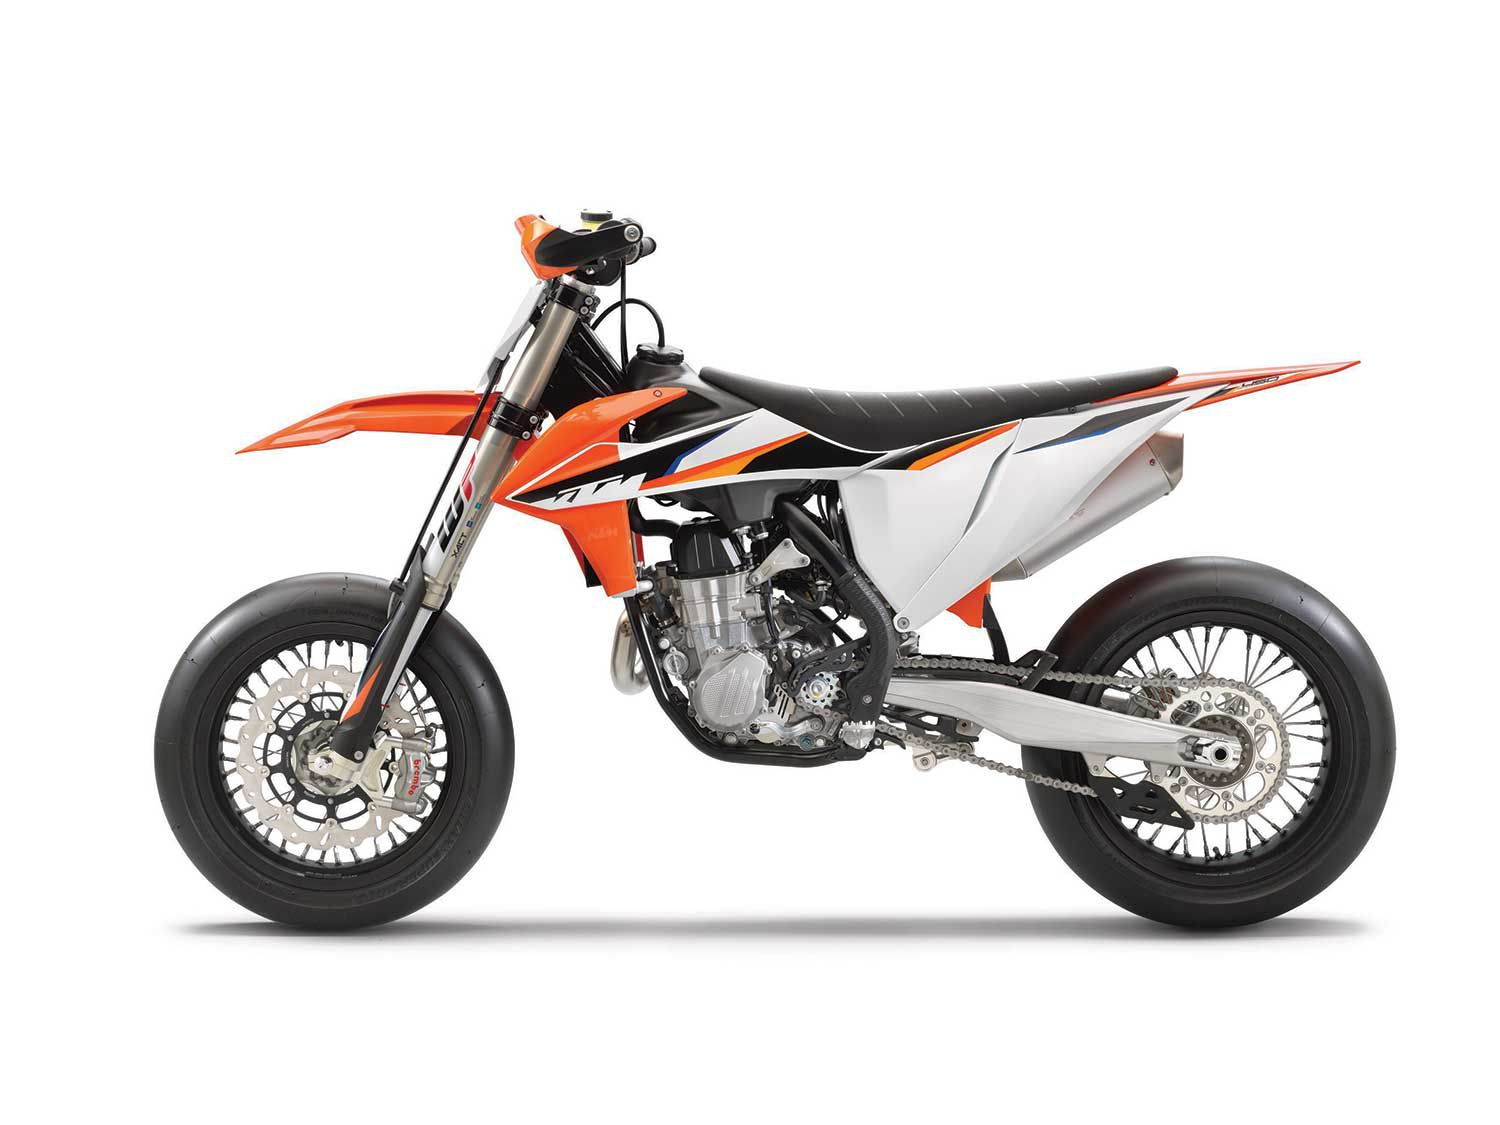 The 2021 KTM 450 SMR gets taller final drive gearing, supermoto-specific suspension and wheels (tubeless), as well as a giant Brembo front brake.